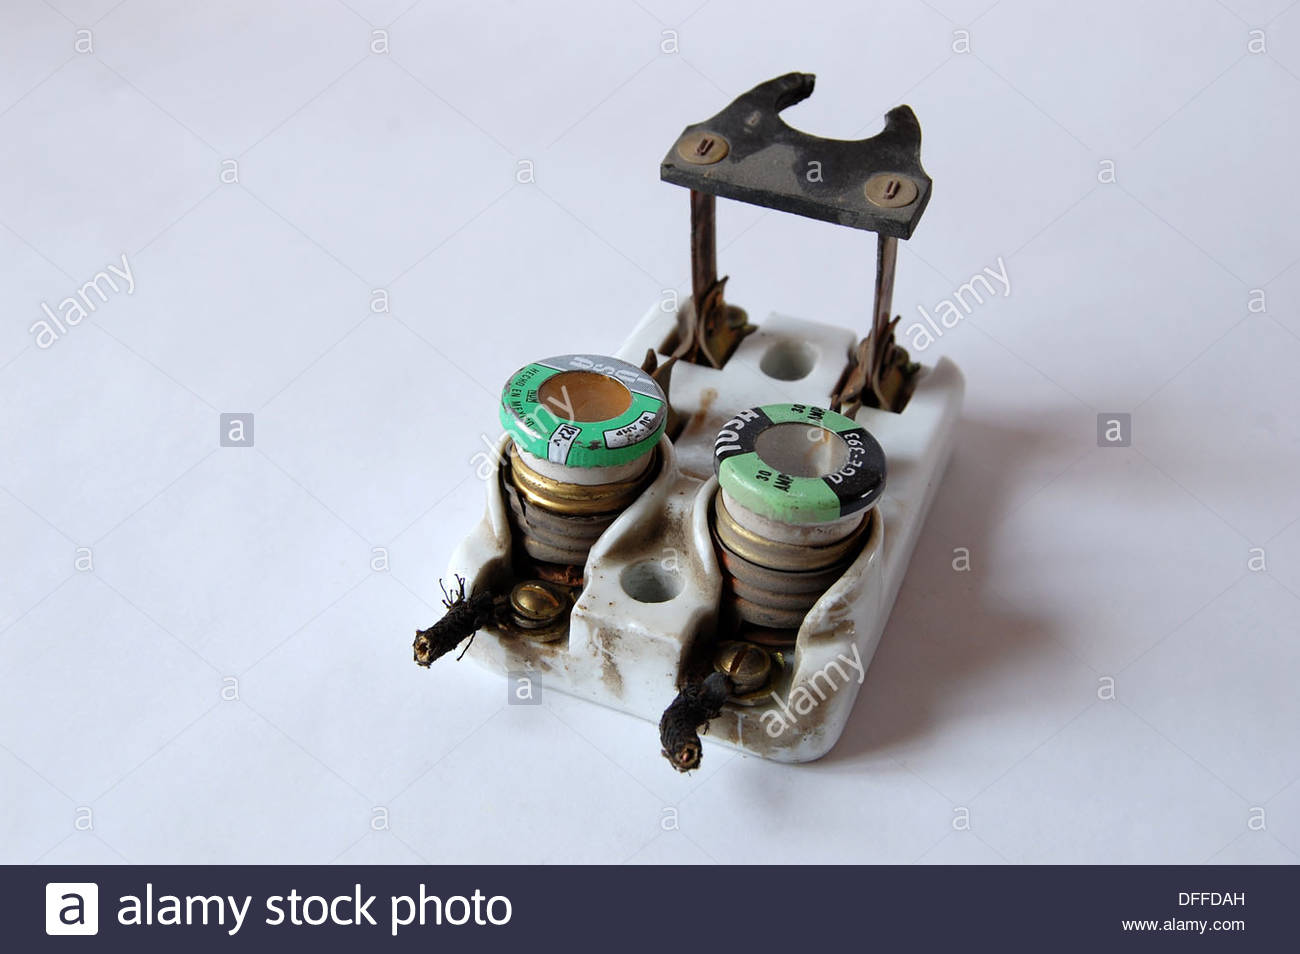 1950s vintage ceramic fuse box electrical circuit breaker. Black Bedroom Furniture Sets. Home Design Ideas